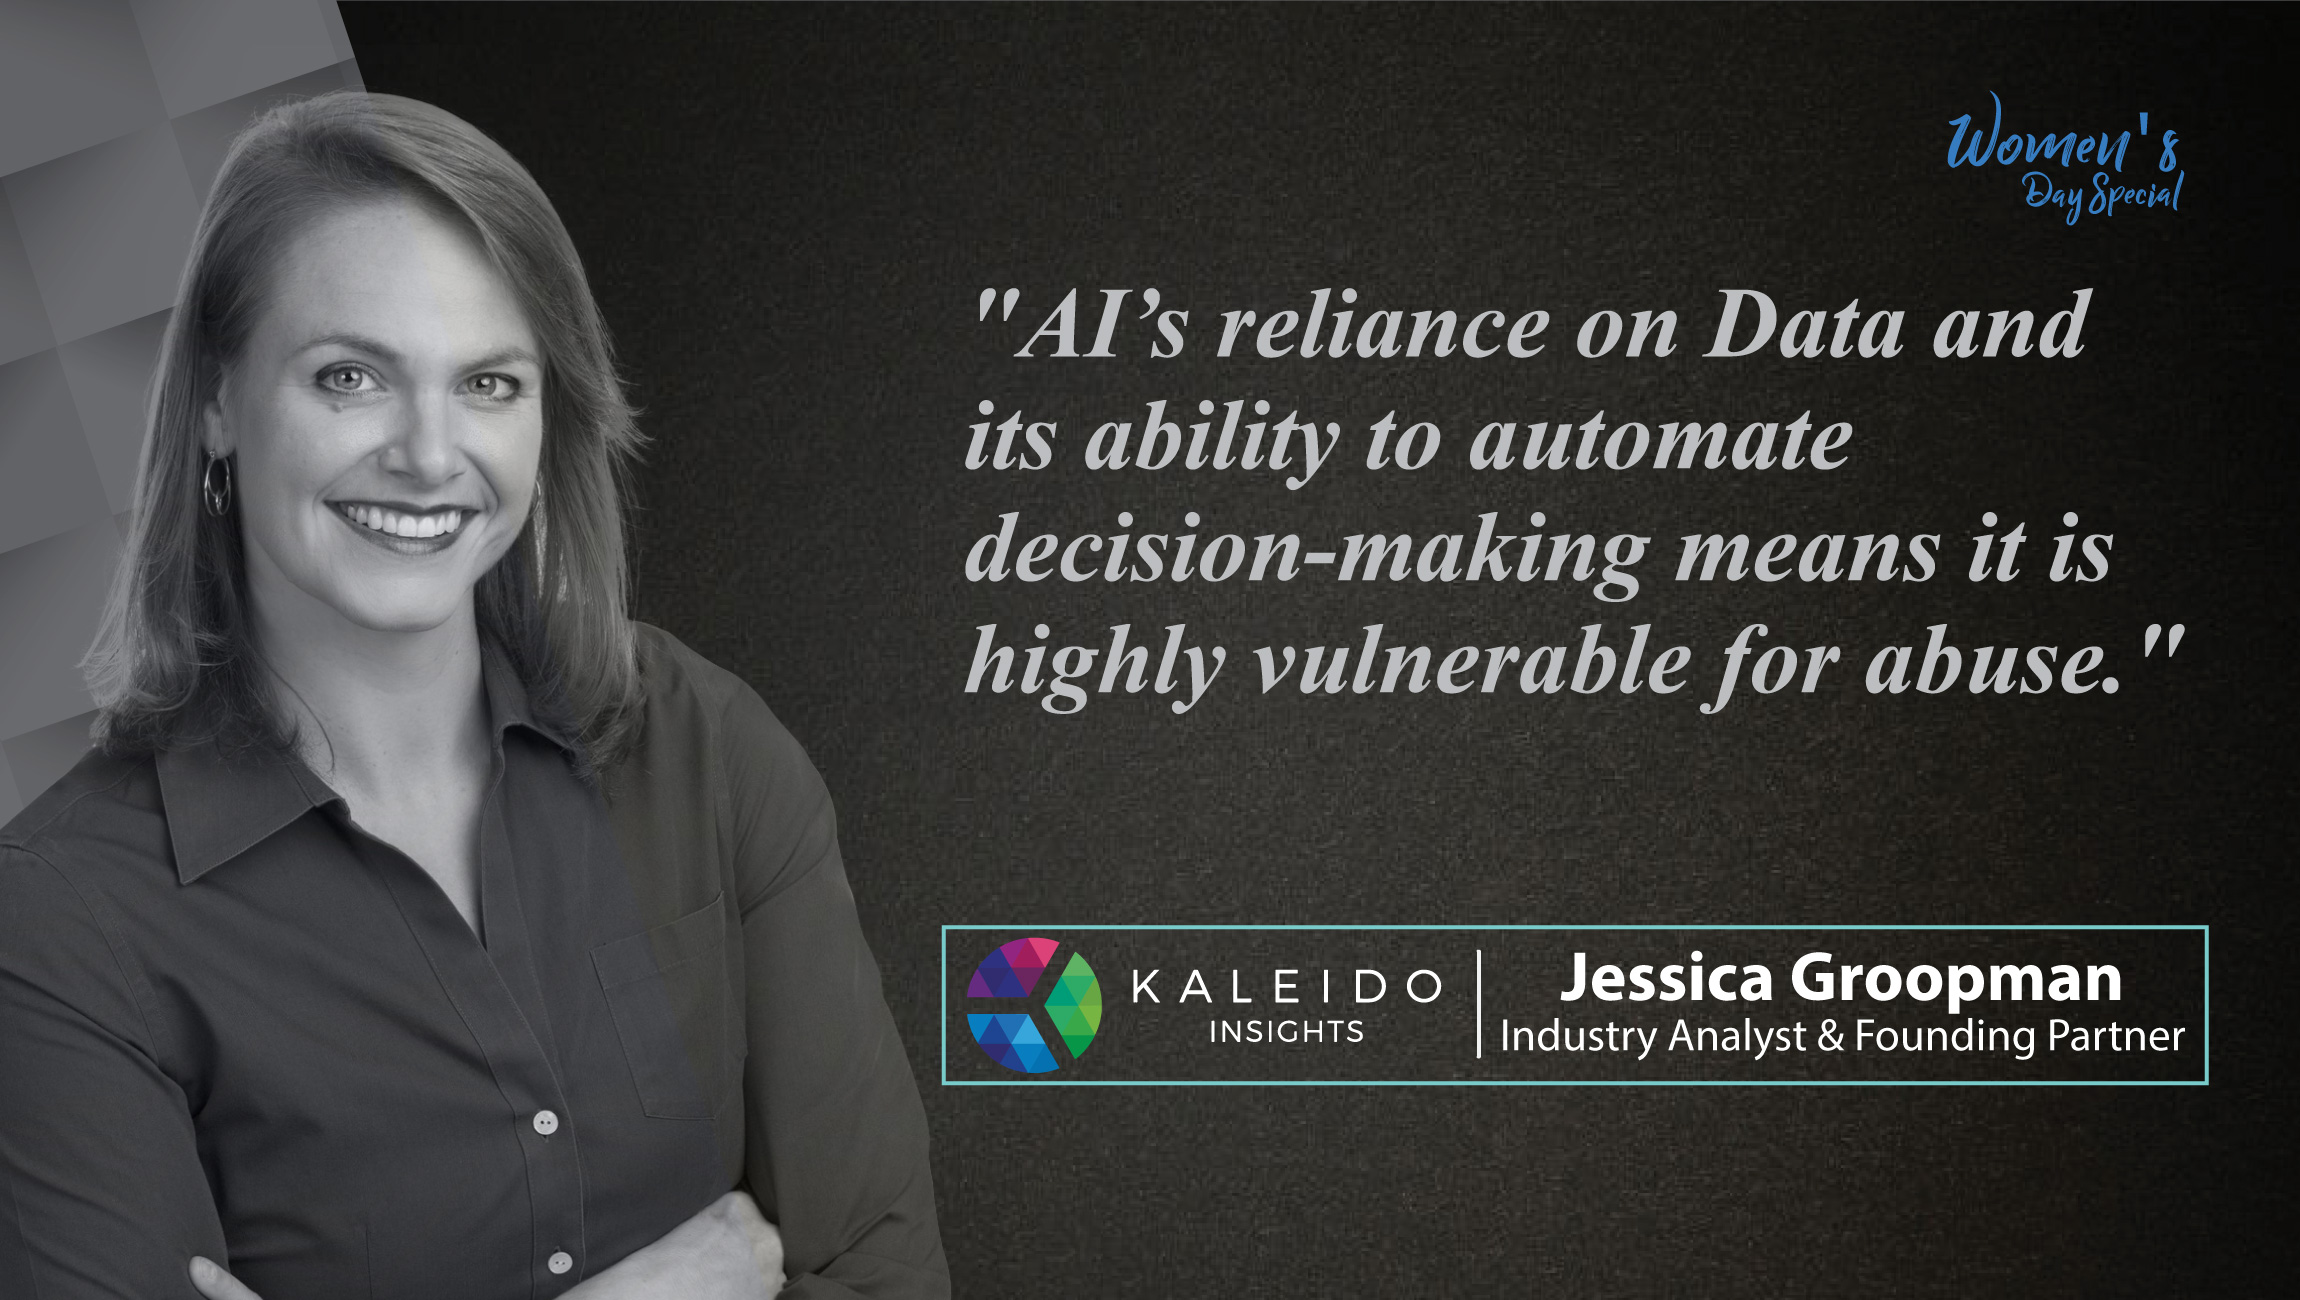 Jessica Groopman, Industry Analyst & Founding Partner at Kaleido Insights